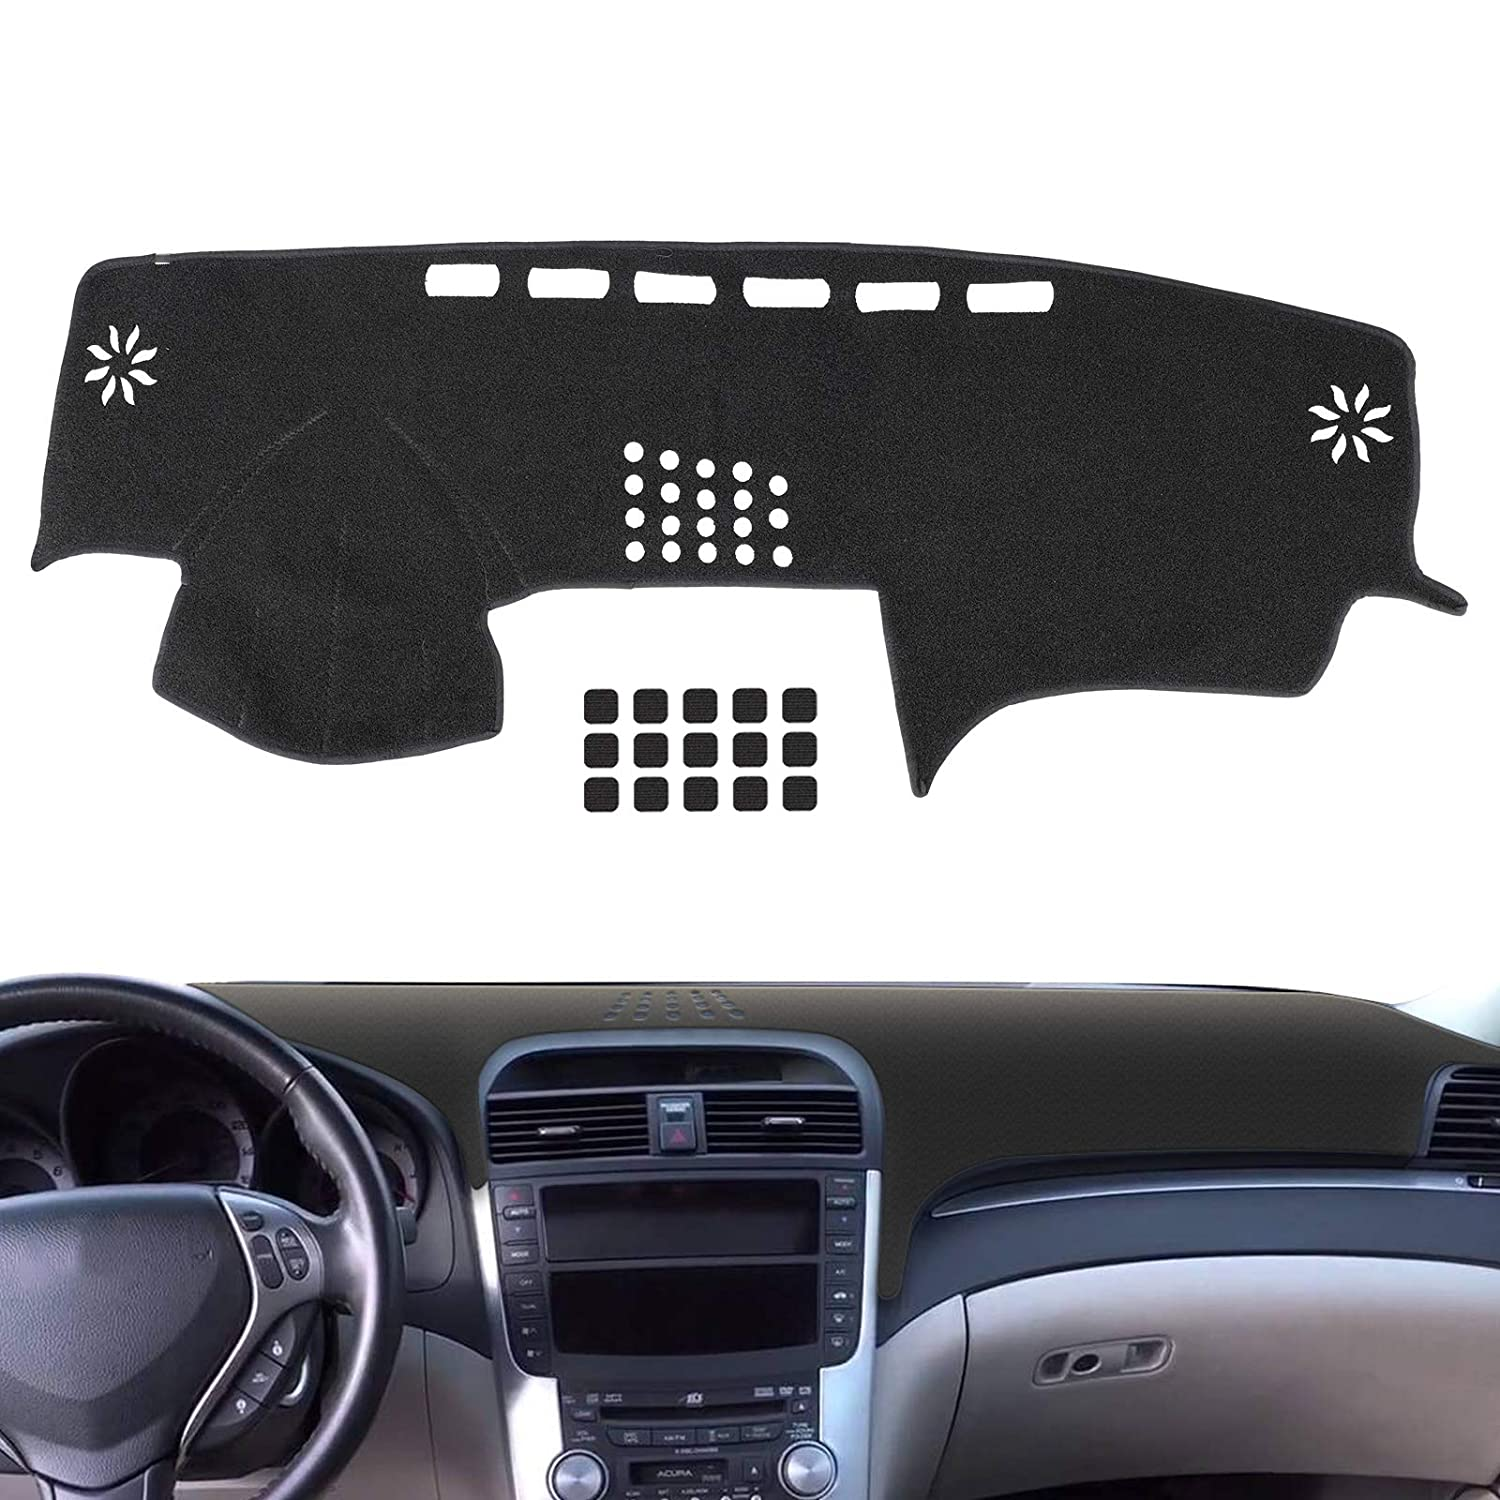 EEEKit Dashboard Cover Dashmat Sun Cover Pad Fit for Acura TL 2004-2008